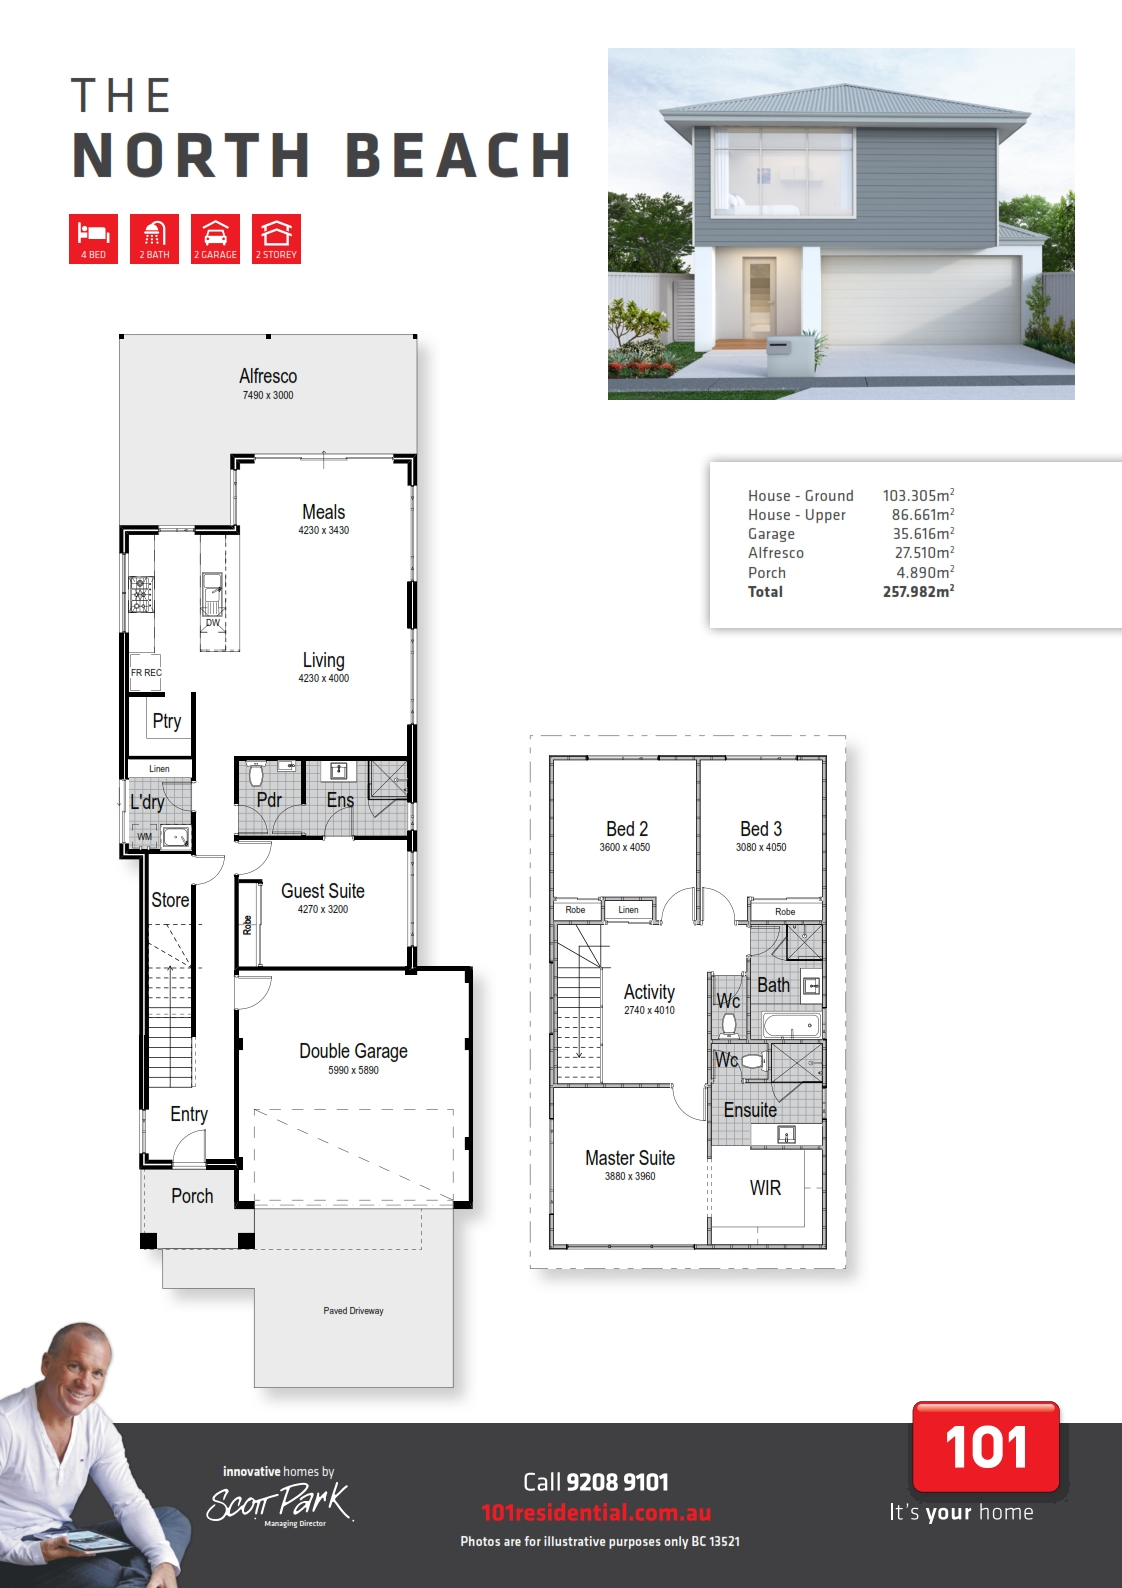 101 A3 Floor Plan - Northbeach WEB_001